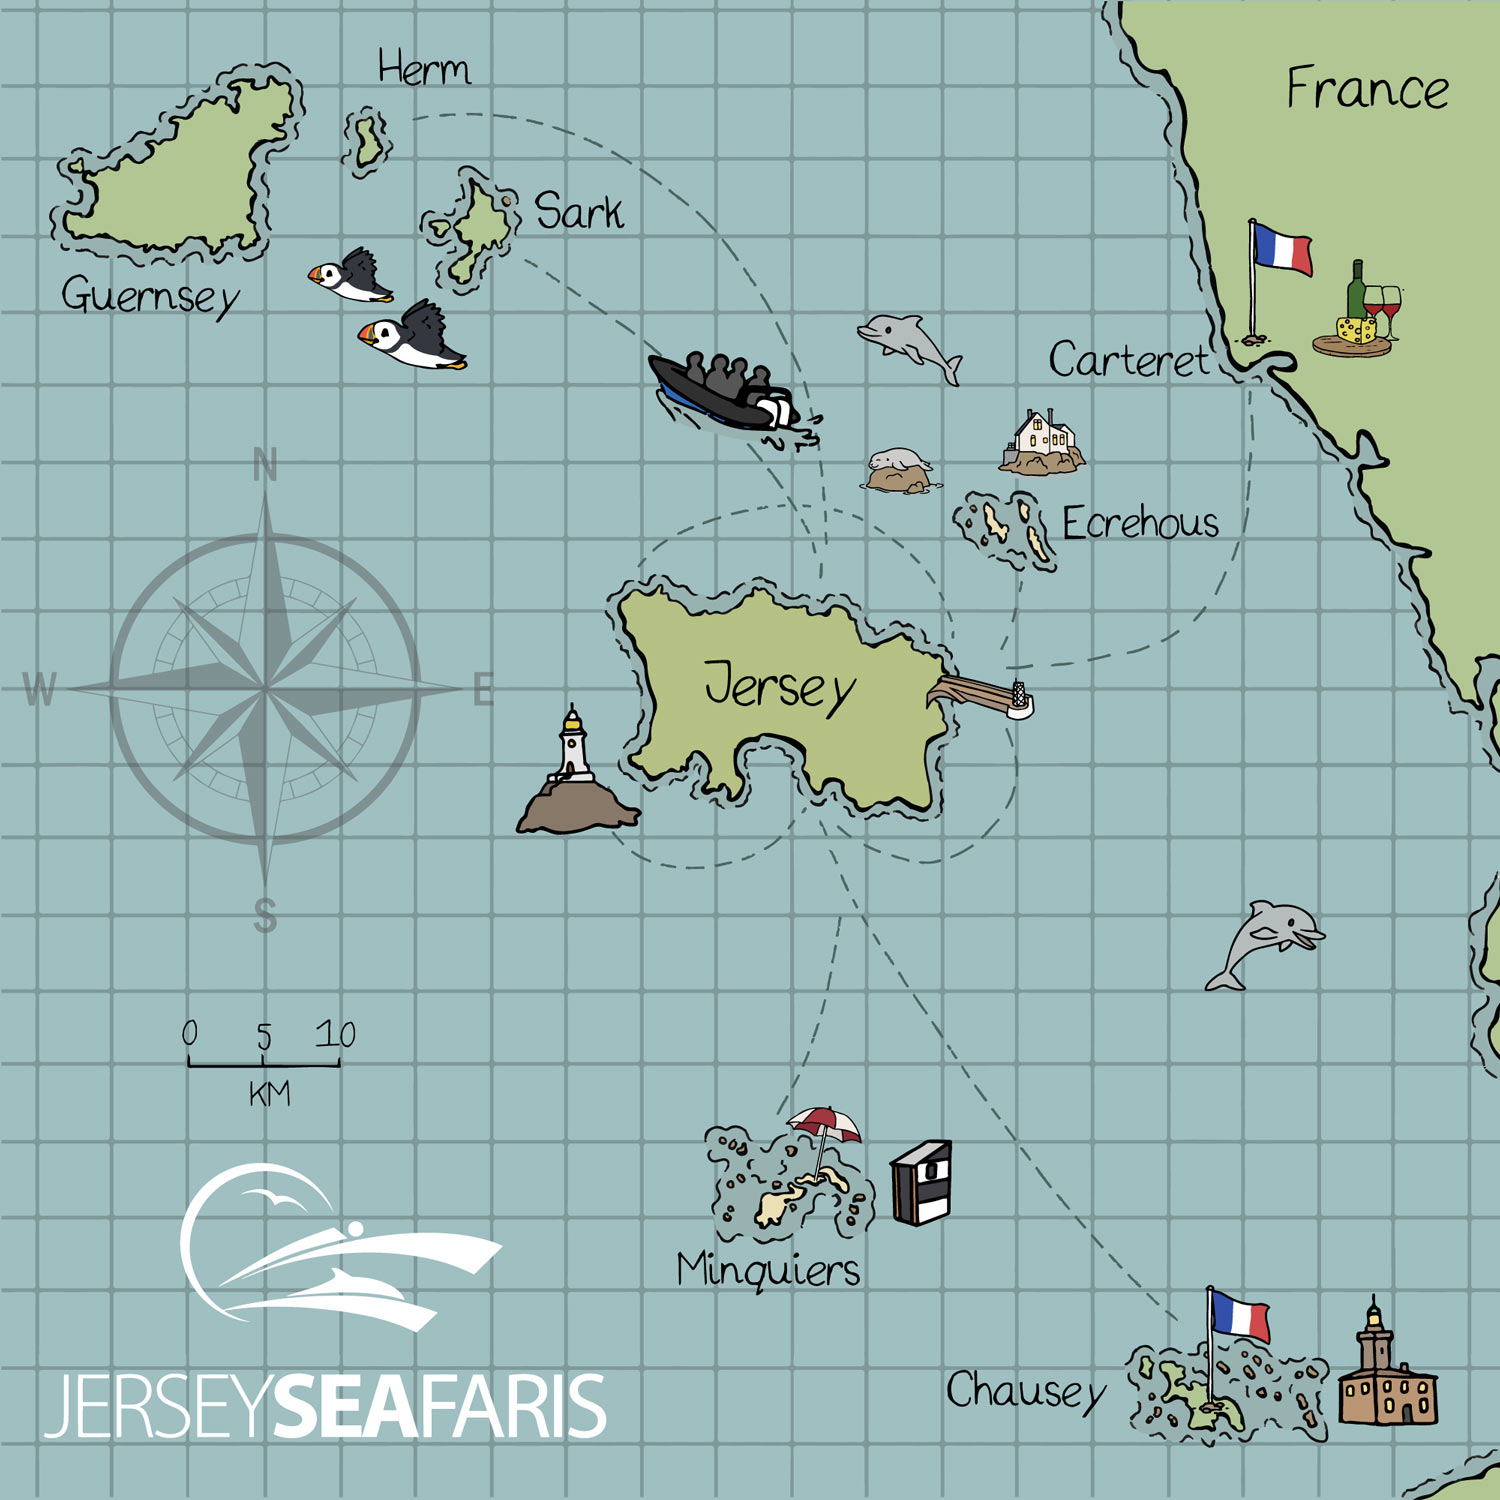 Jersey-Seafari-Map-Channel-Isles.jpg